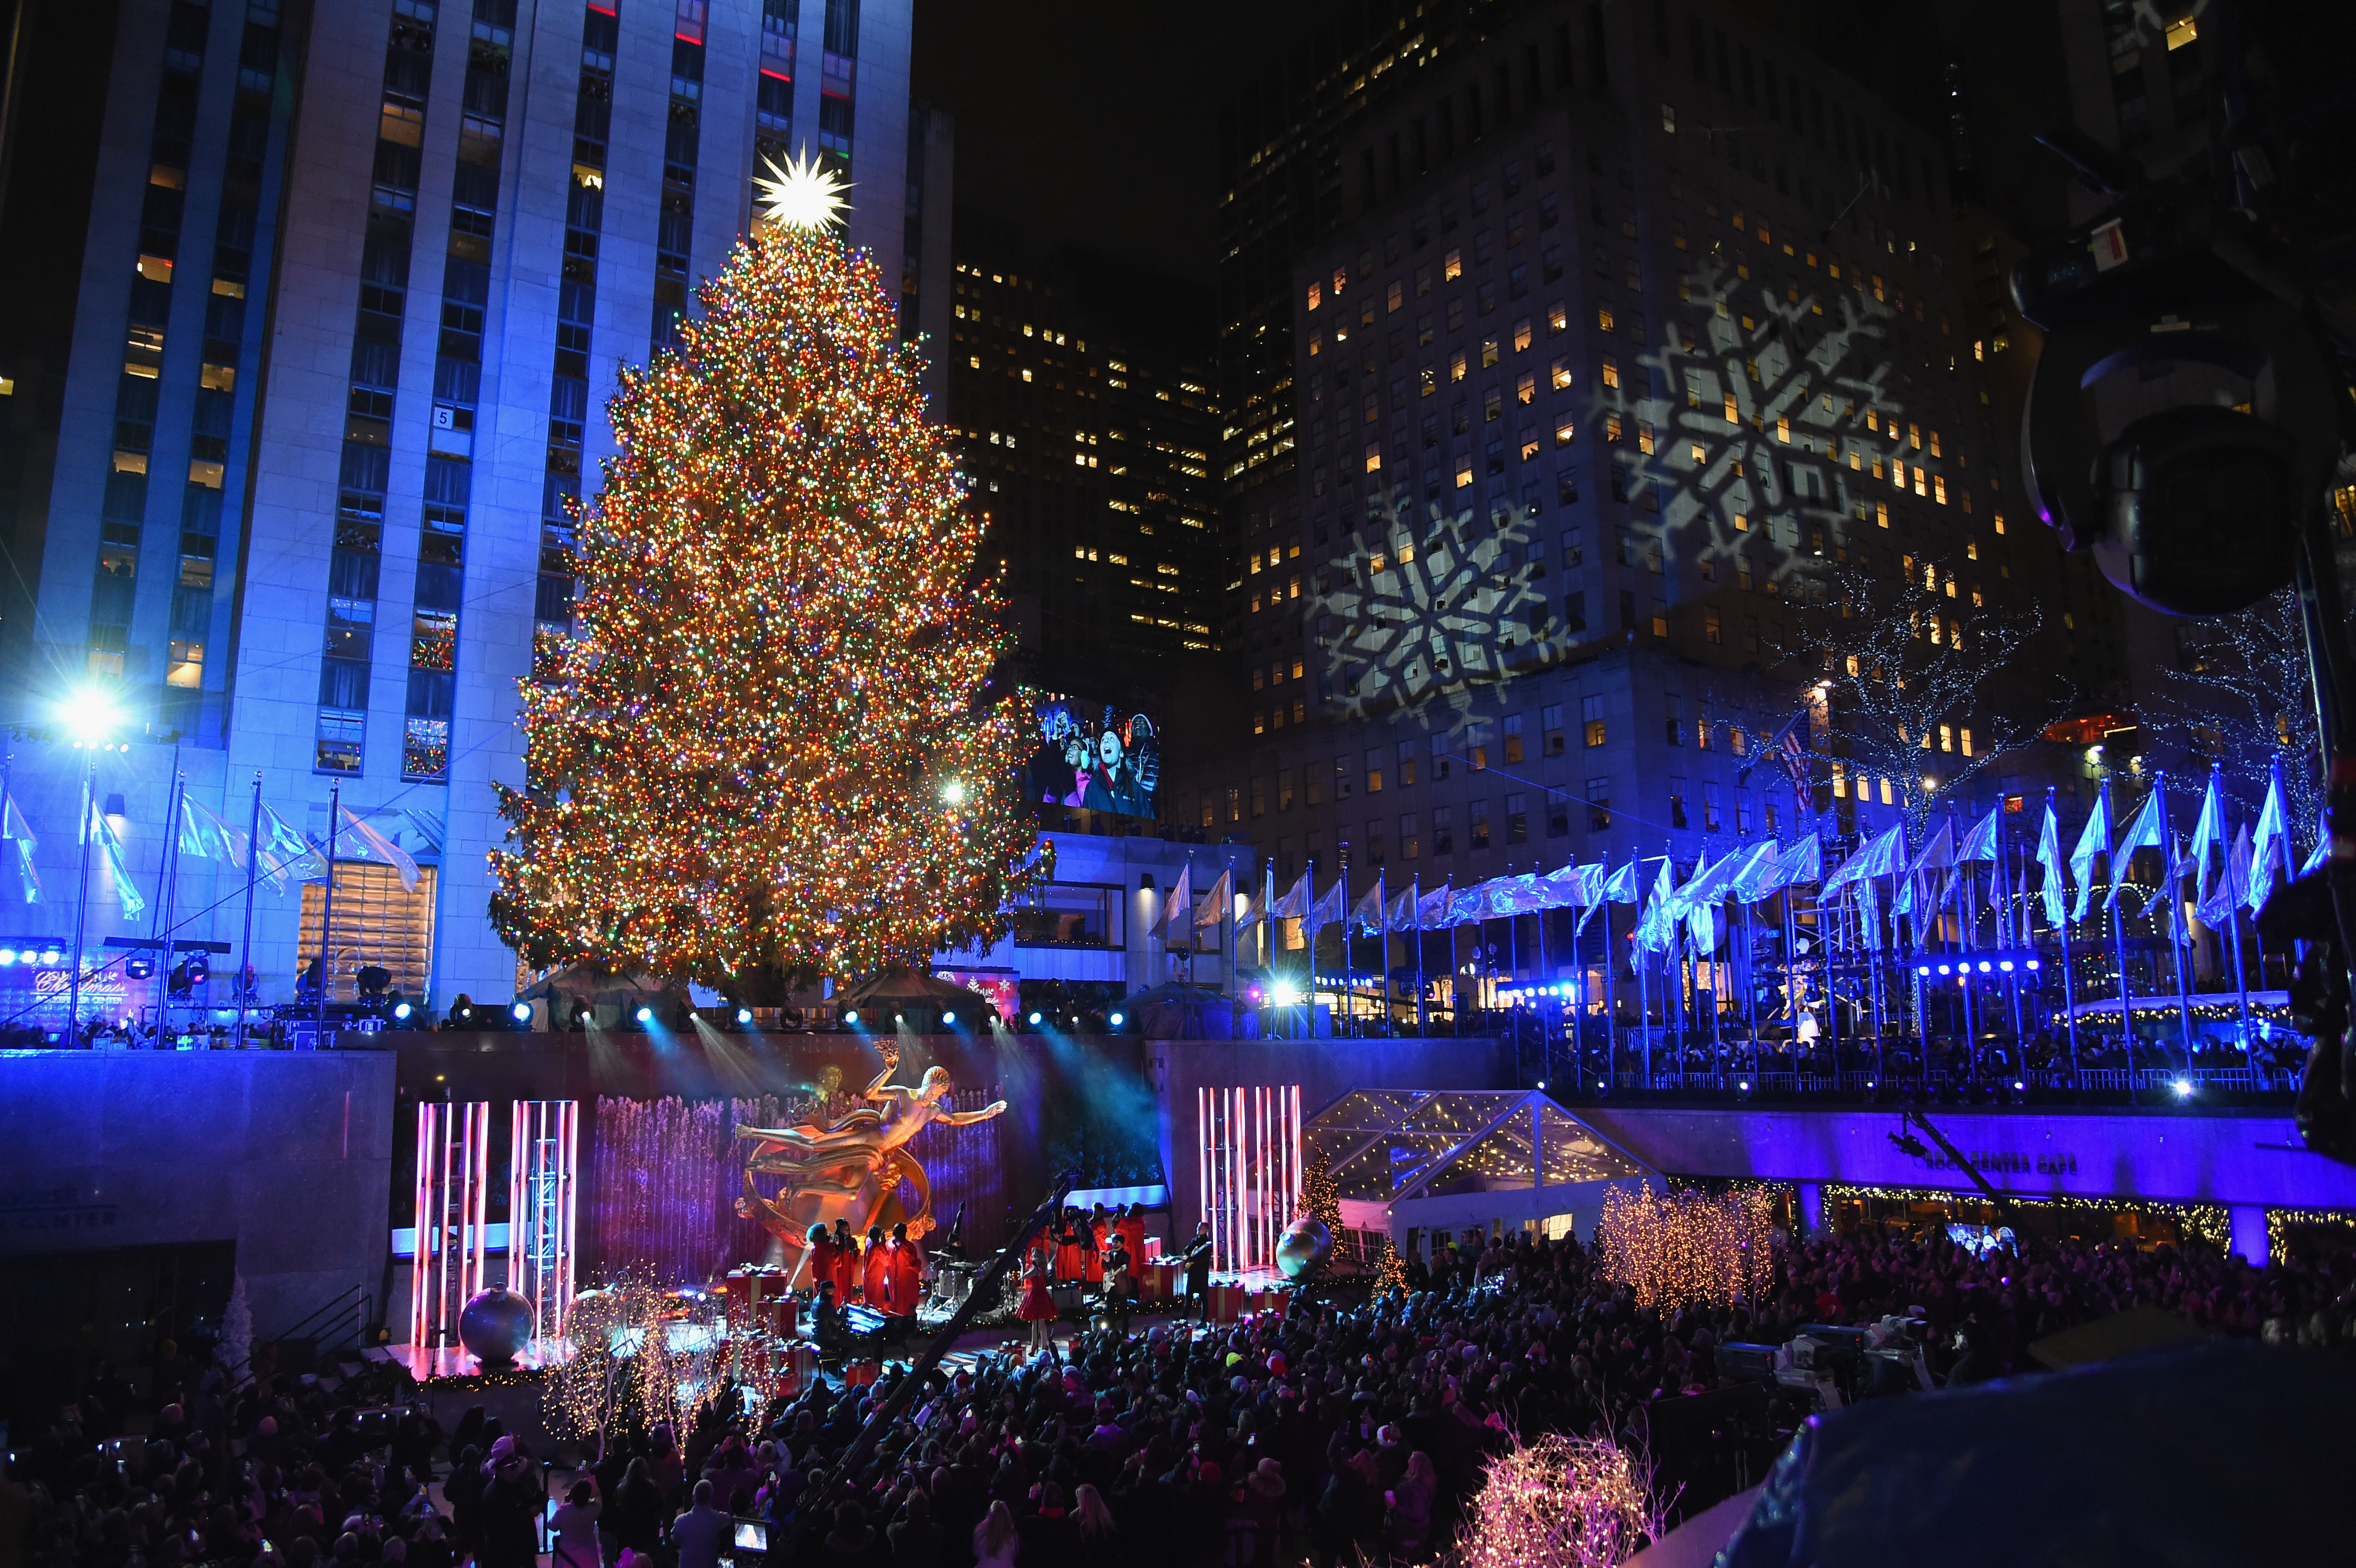 5 Fascinating Facts About the Rockefeller Center Christmas Tree This Year